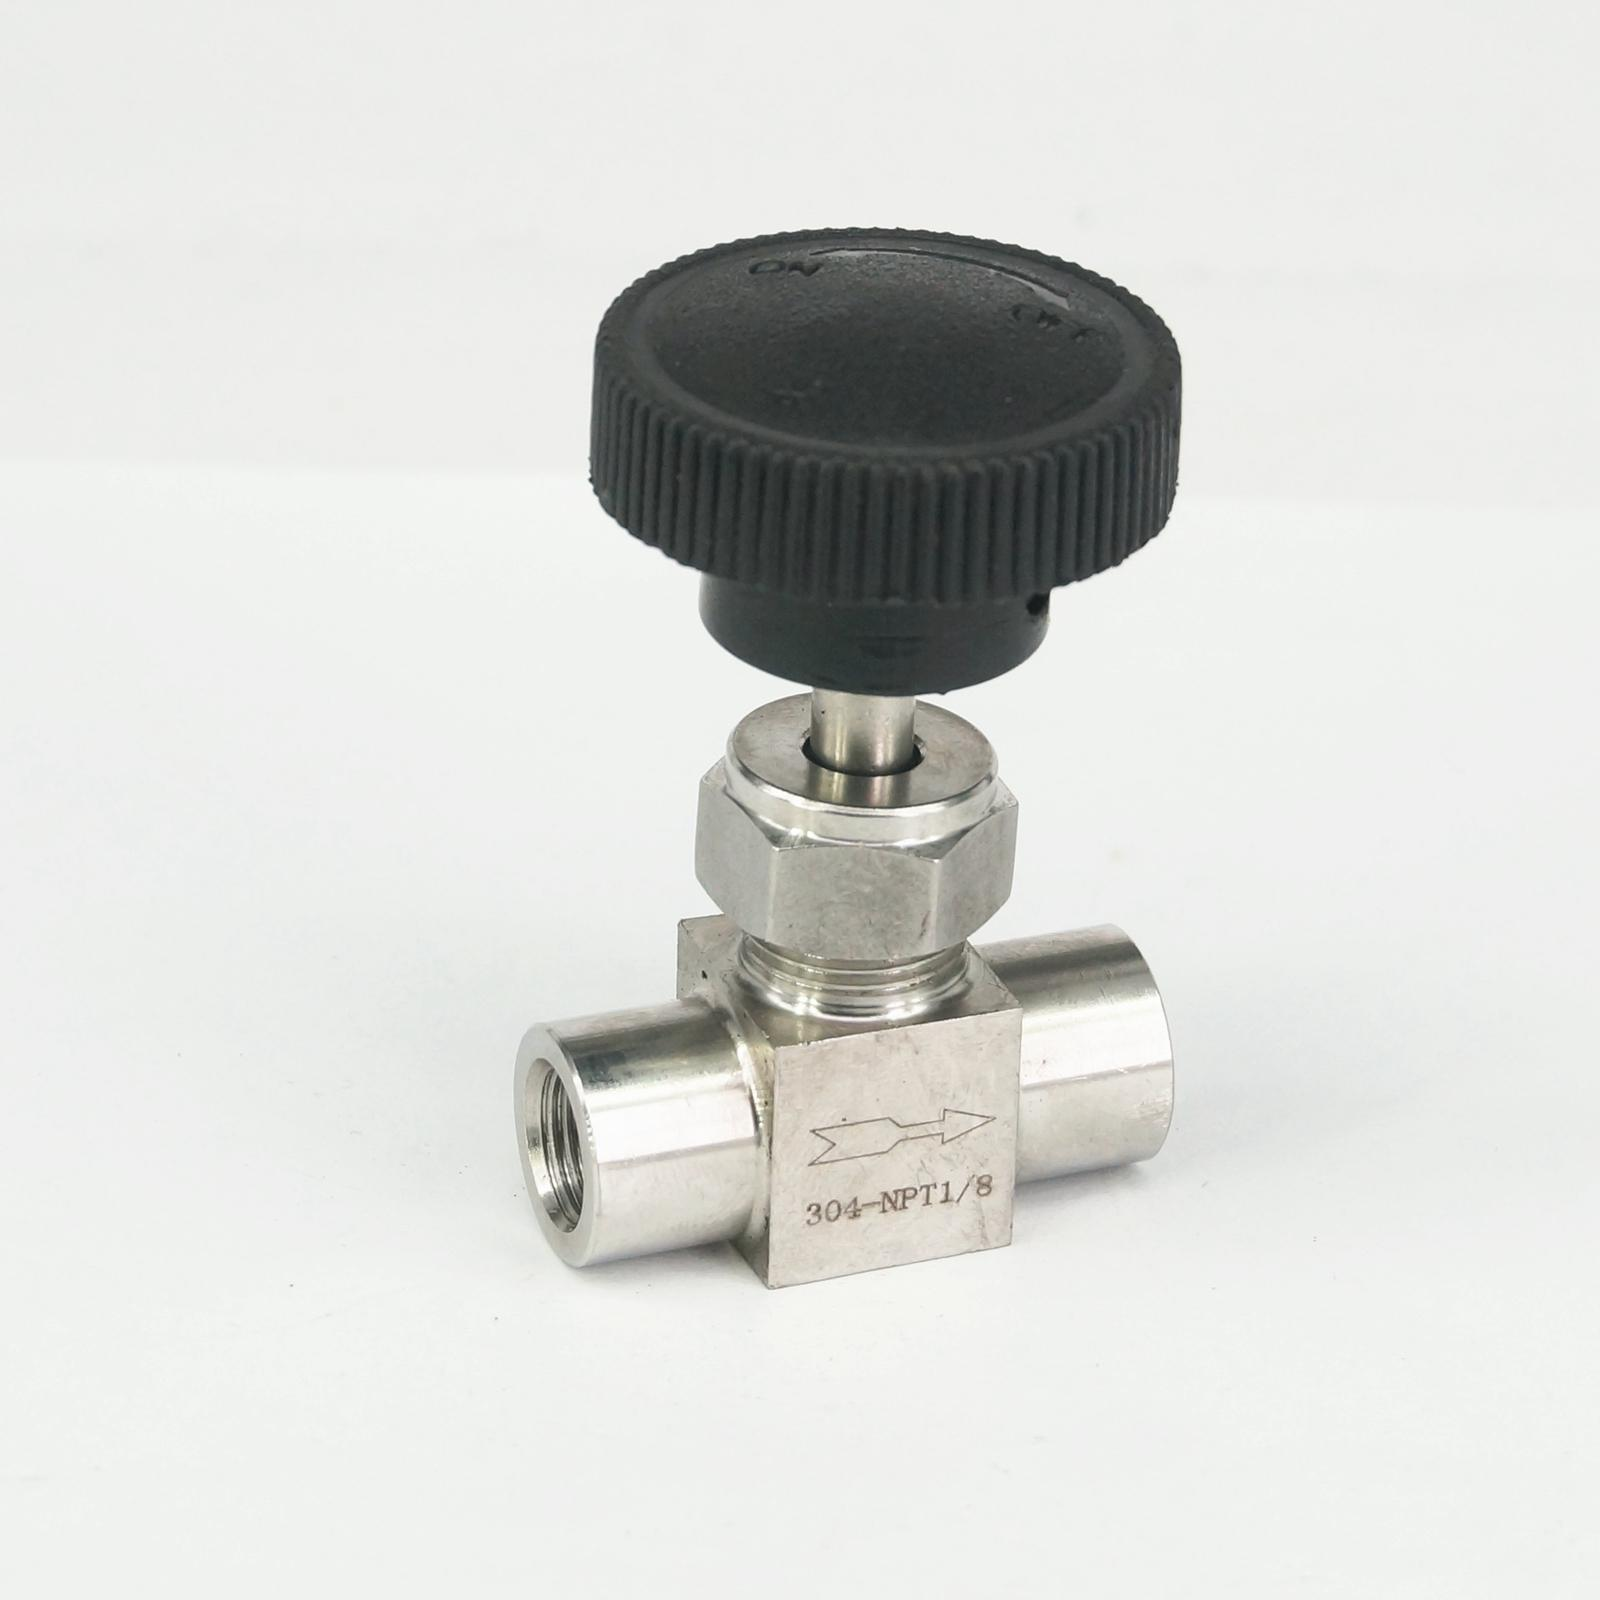 1/8 NPT Female Needle Valve 304 Stainless Steel Water Gas Oil Flow Control